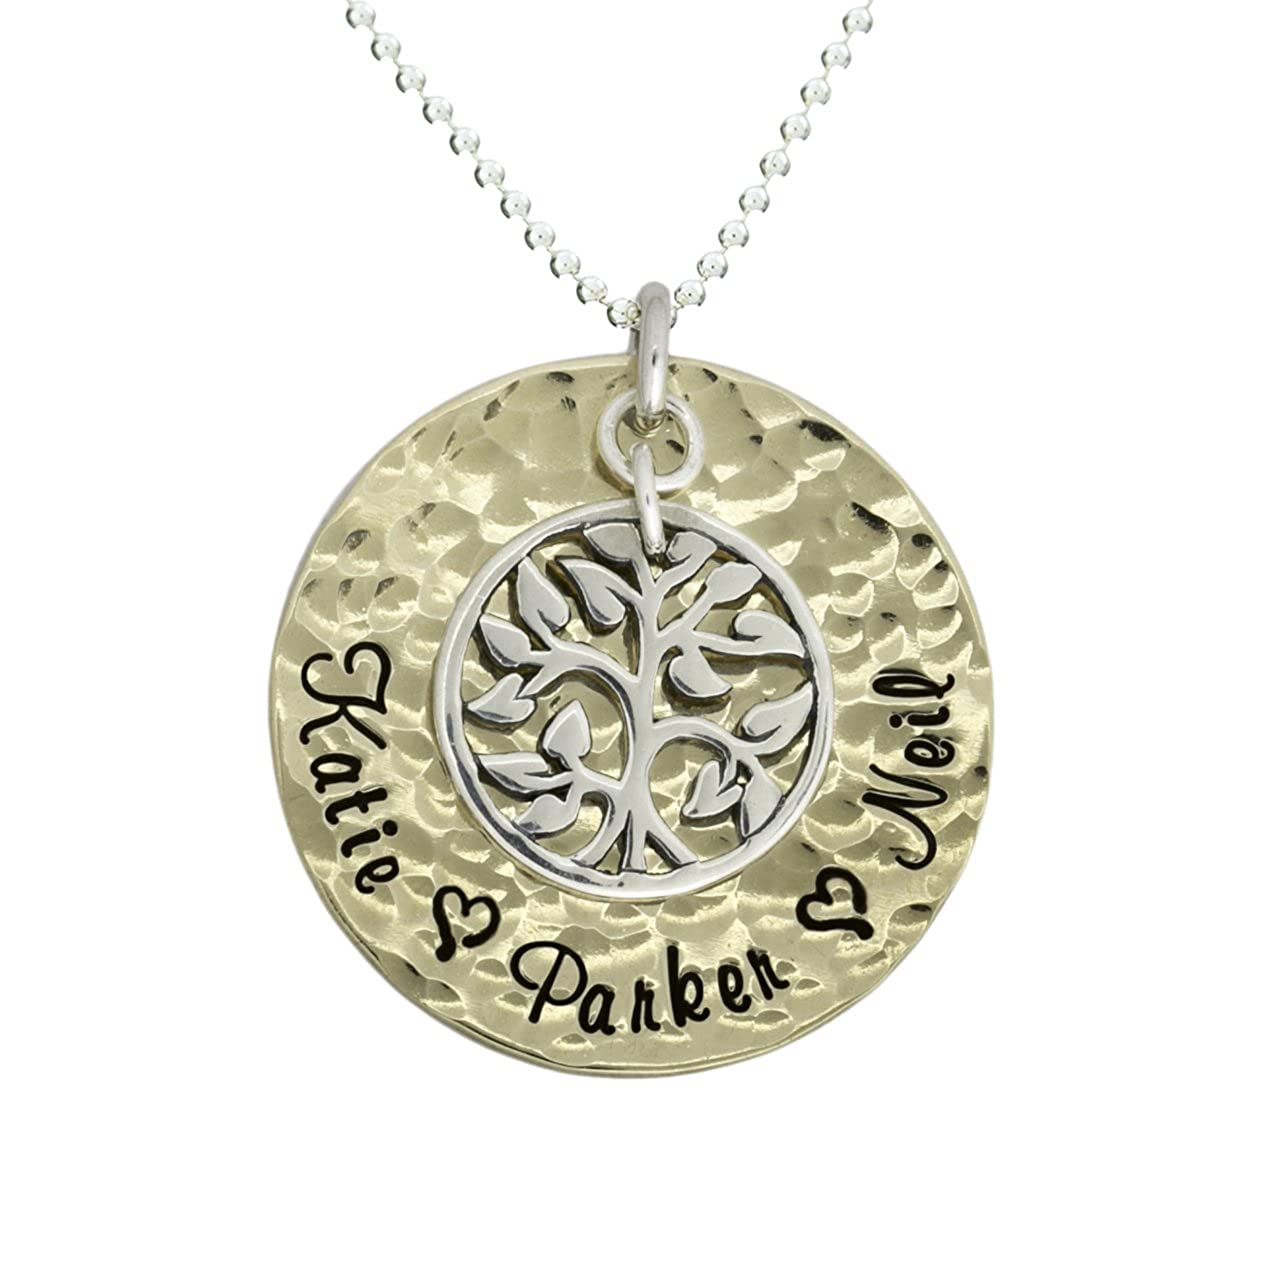 My Pride And Joy Personalized Name Necklace with 1 Inch 14k Gold Plated Disc Customized With Names Hammered Pendant Hung With Sterling Silver Tree Charm Choice of Sterling Silver Chain